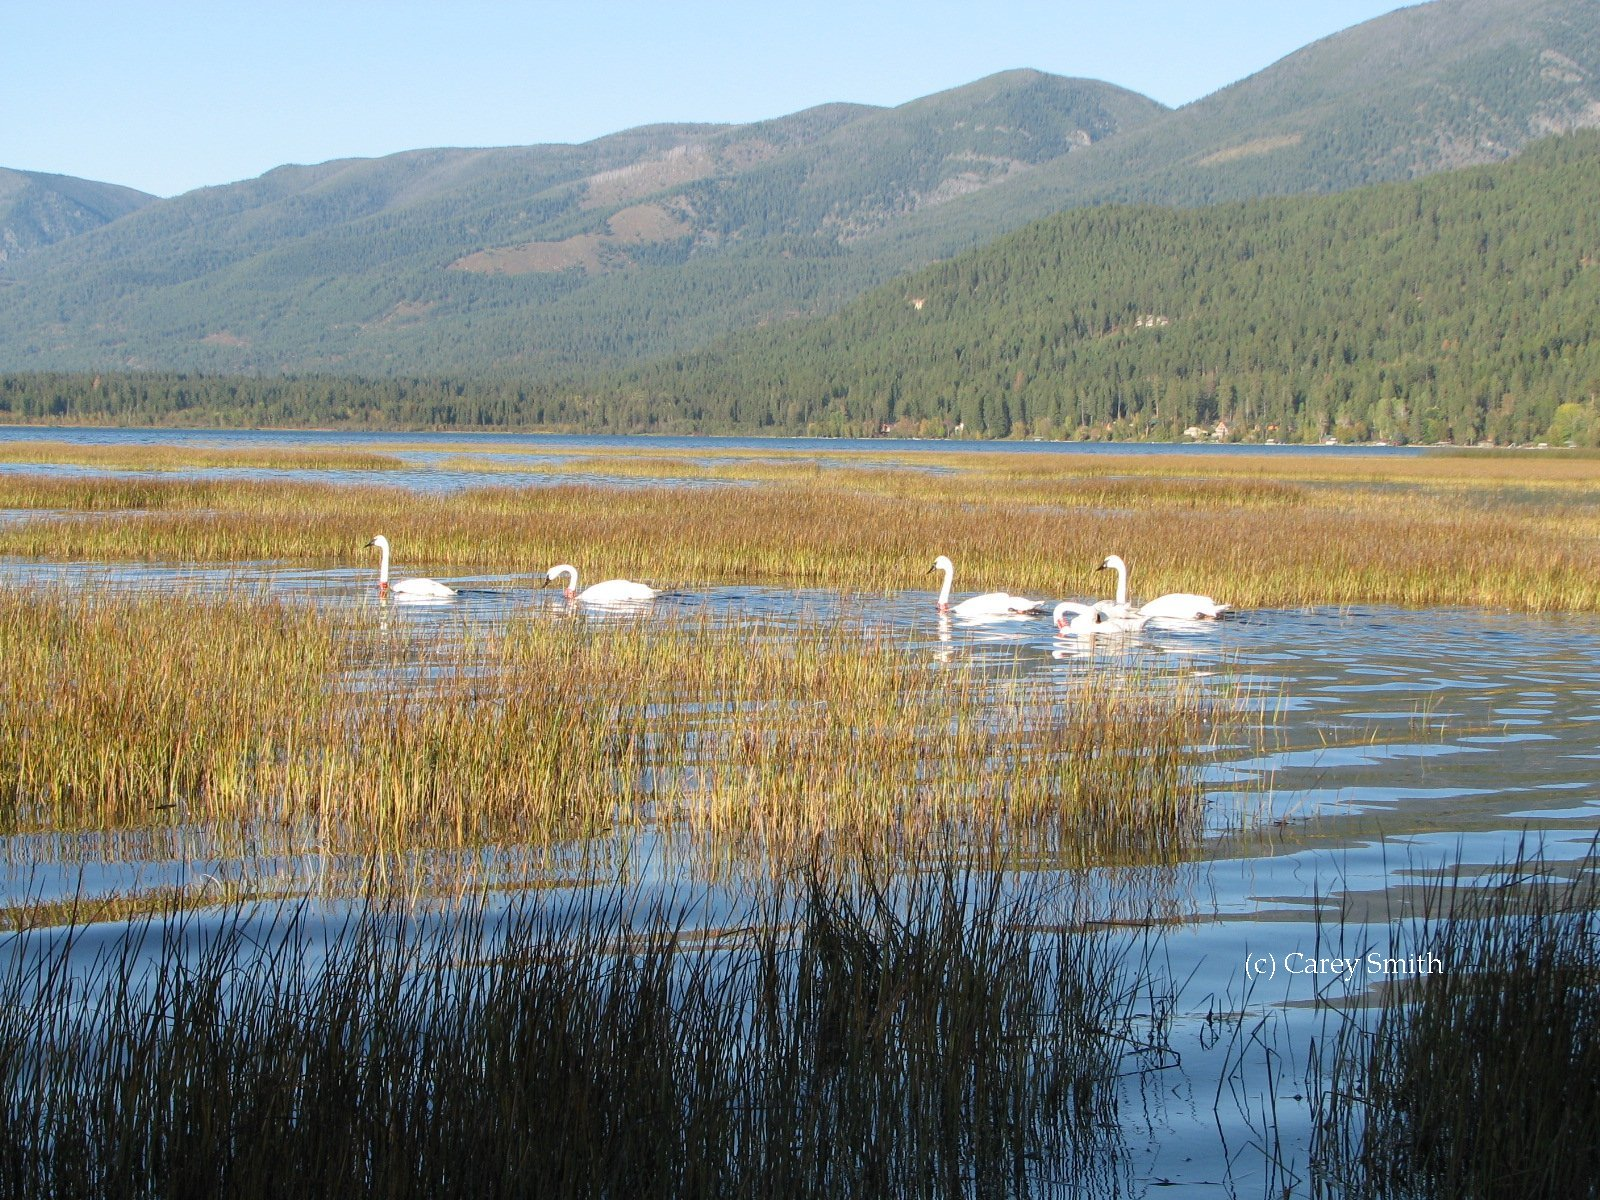 Confederated Salish and Kootenai Tribe's northwest Montana swan restoration